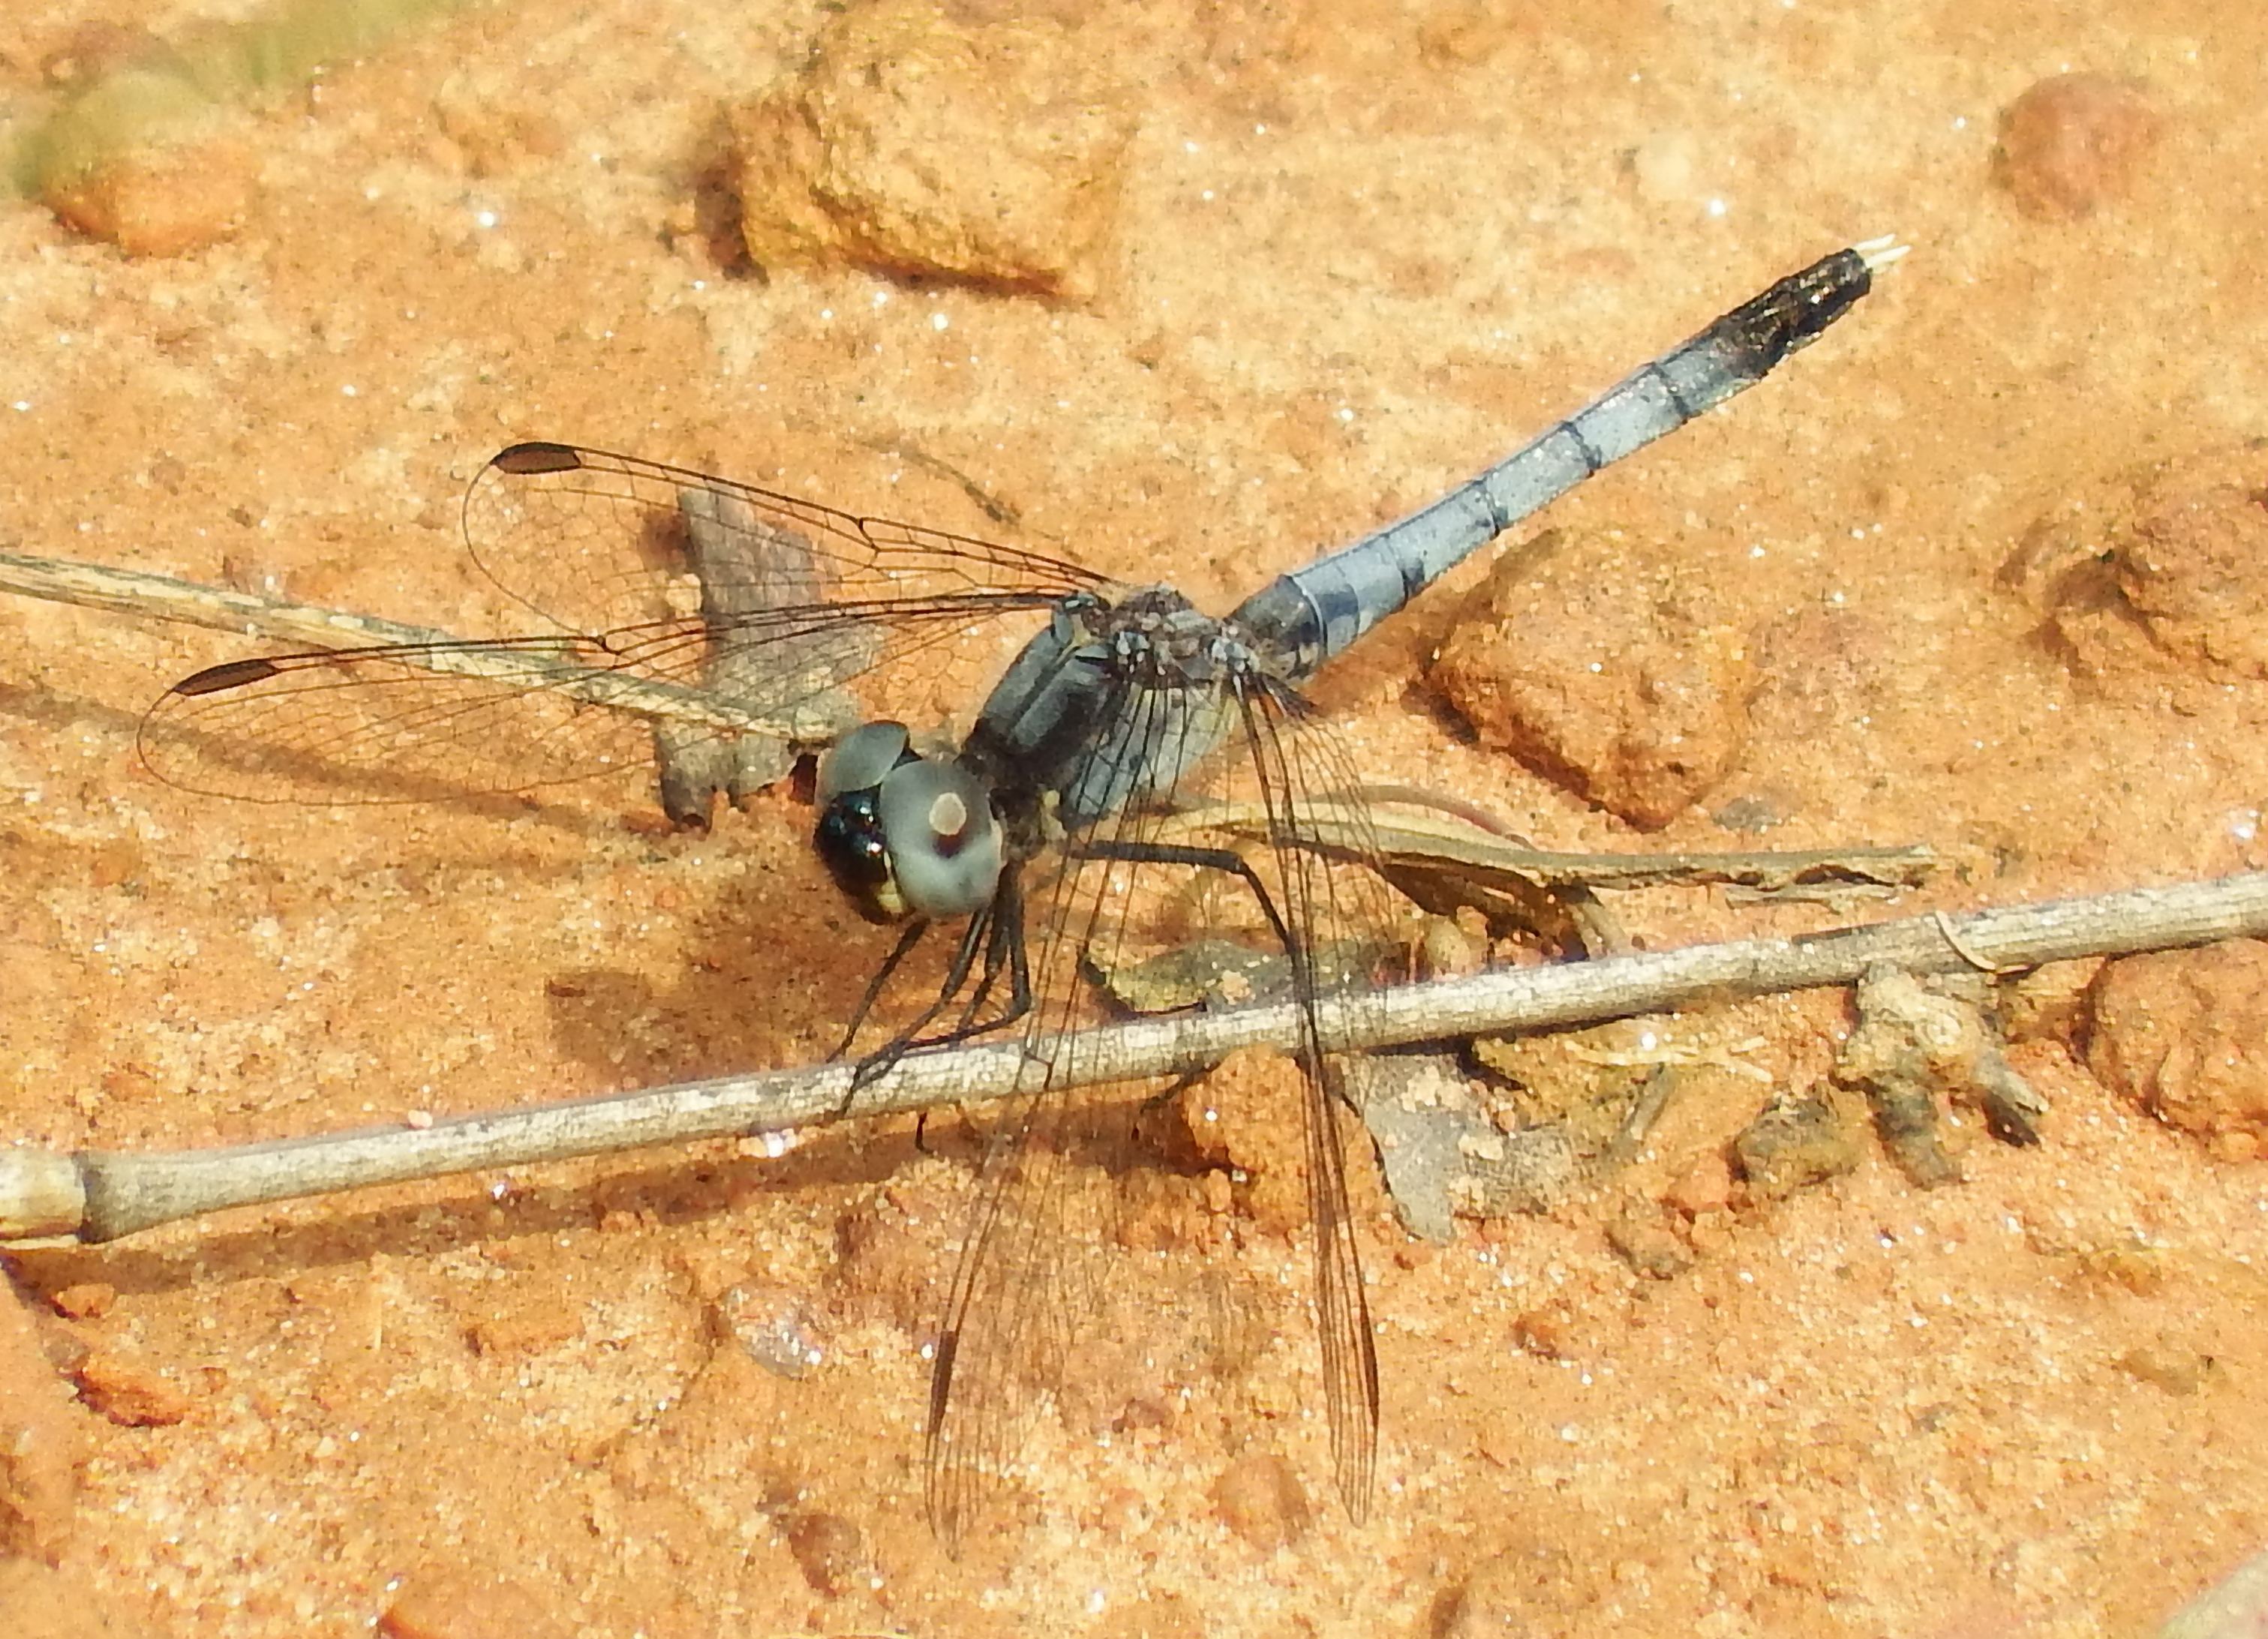 Two dragonfly species recently spotted for the first time in the park